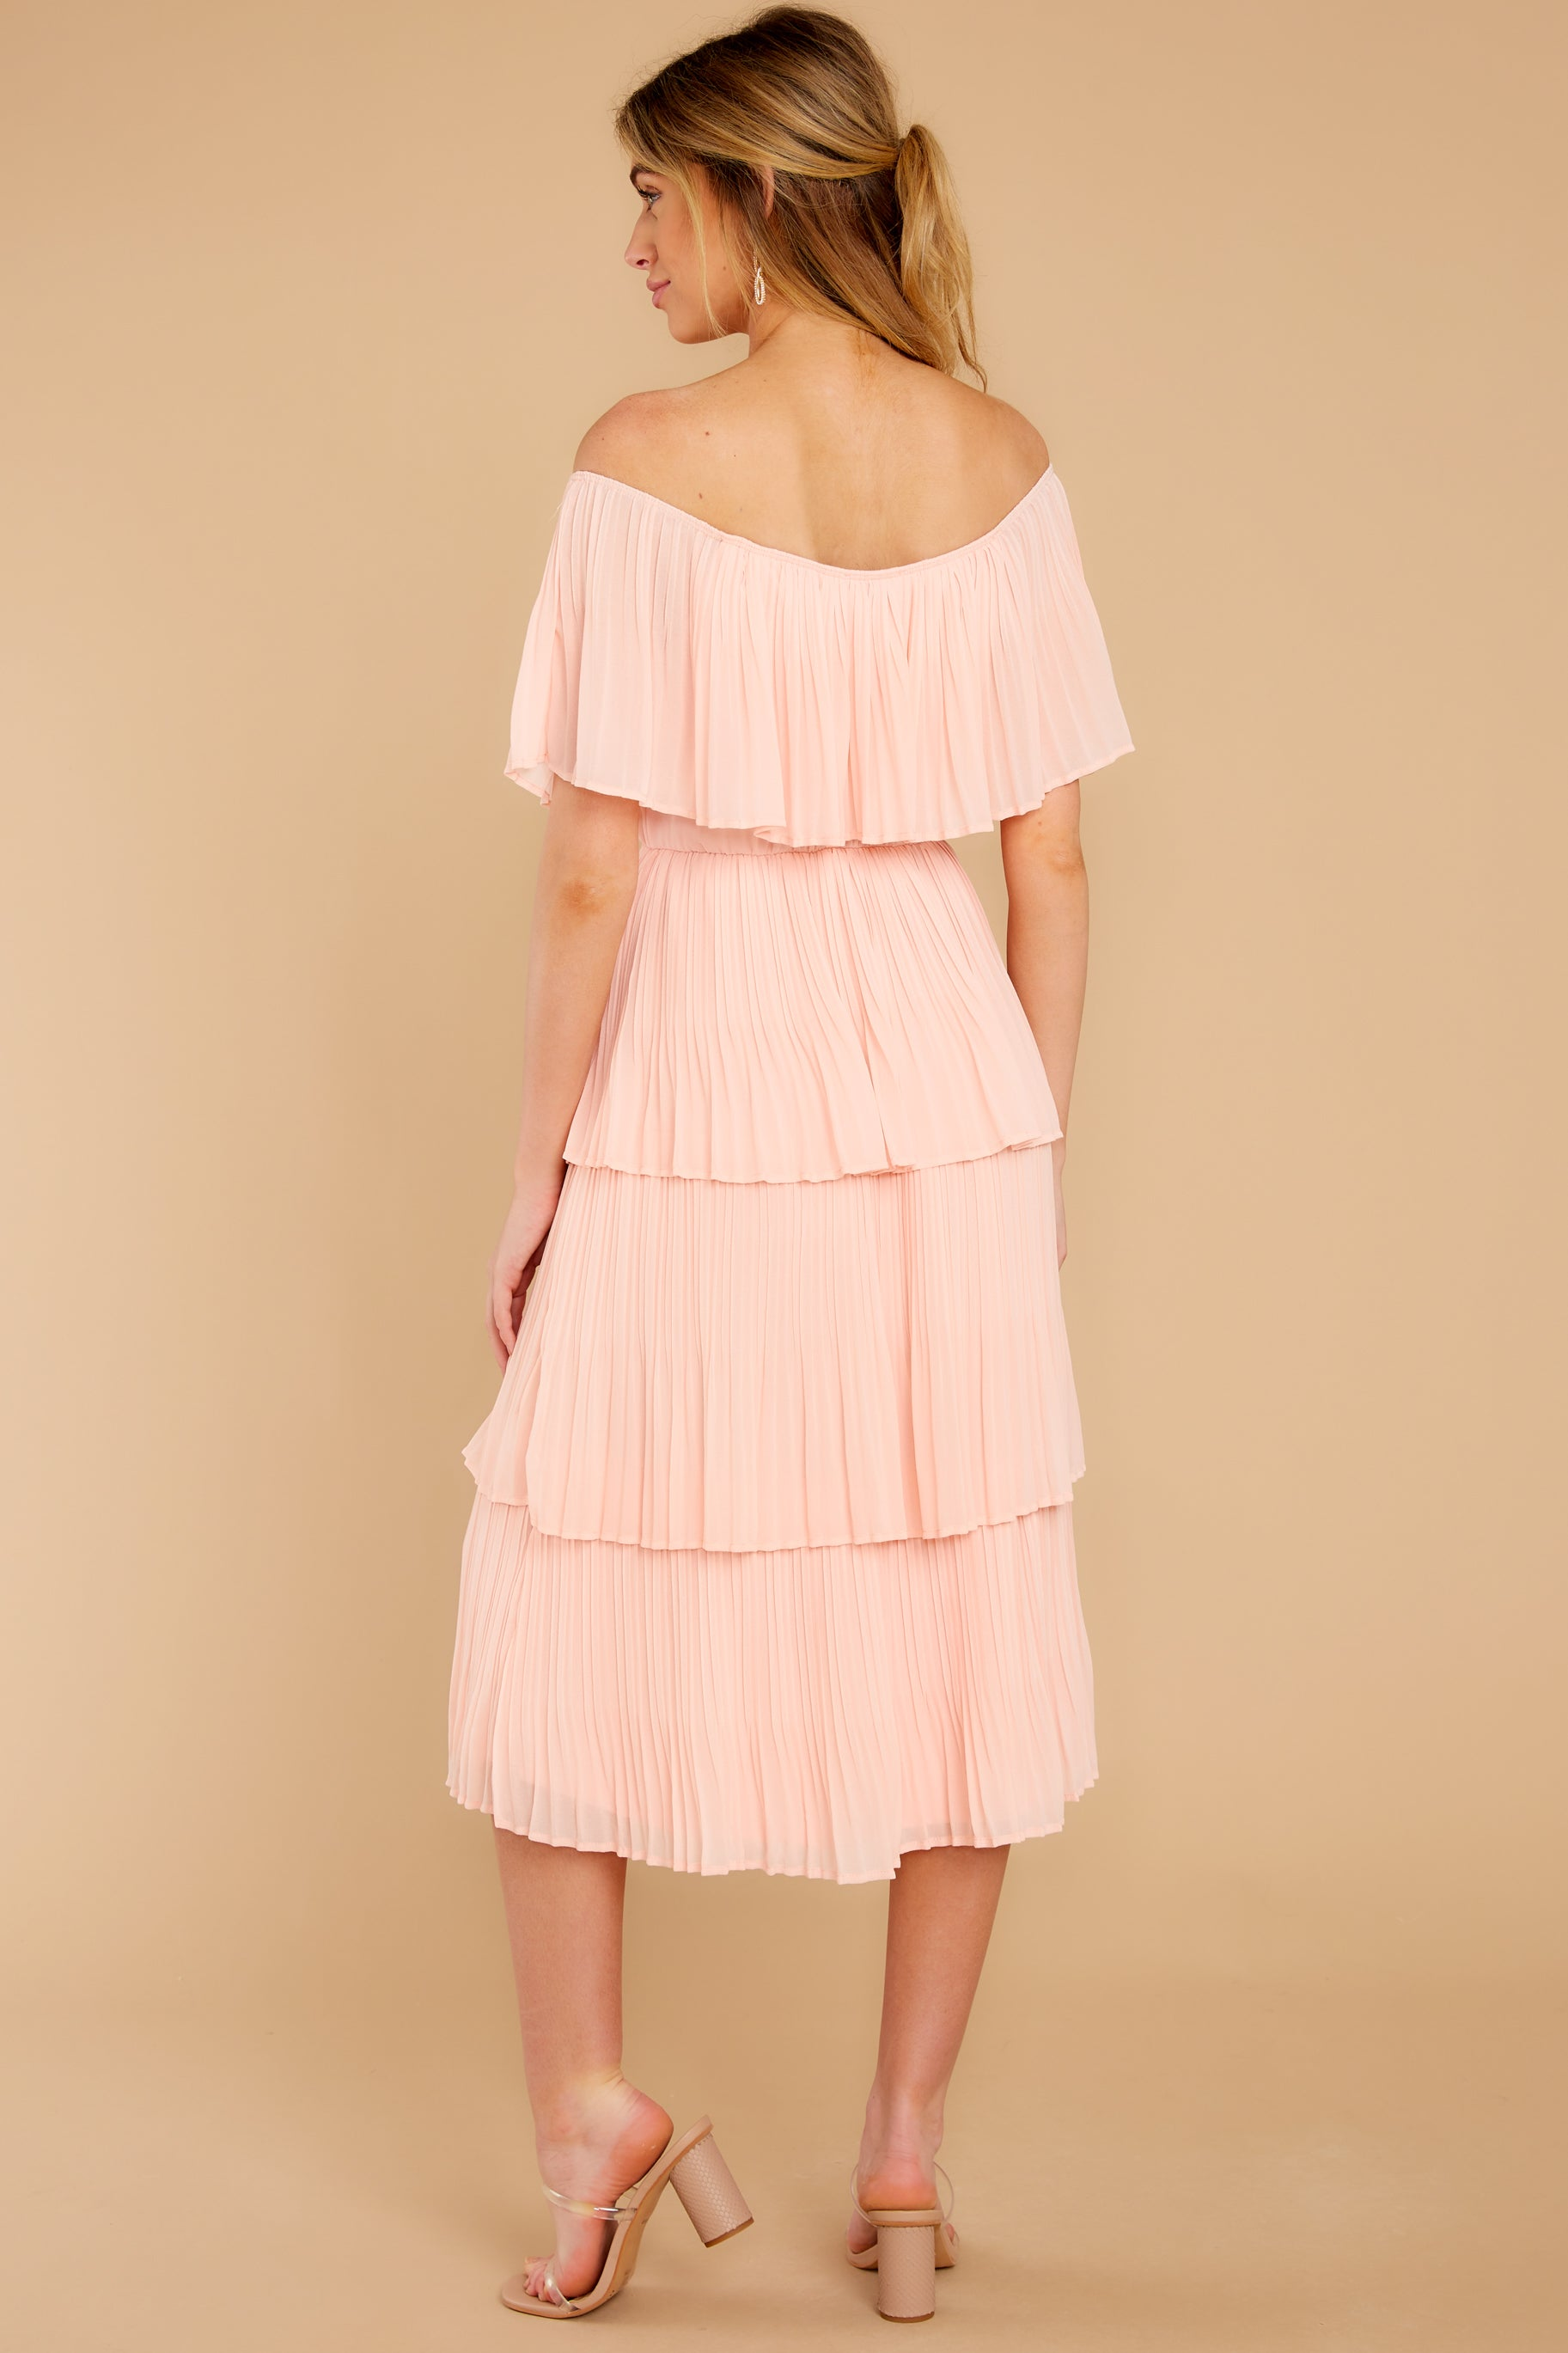 7 See It Happen Blush Pink Midi Dress at reddress.com